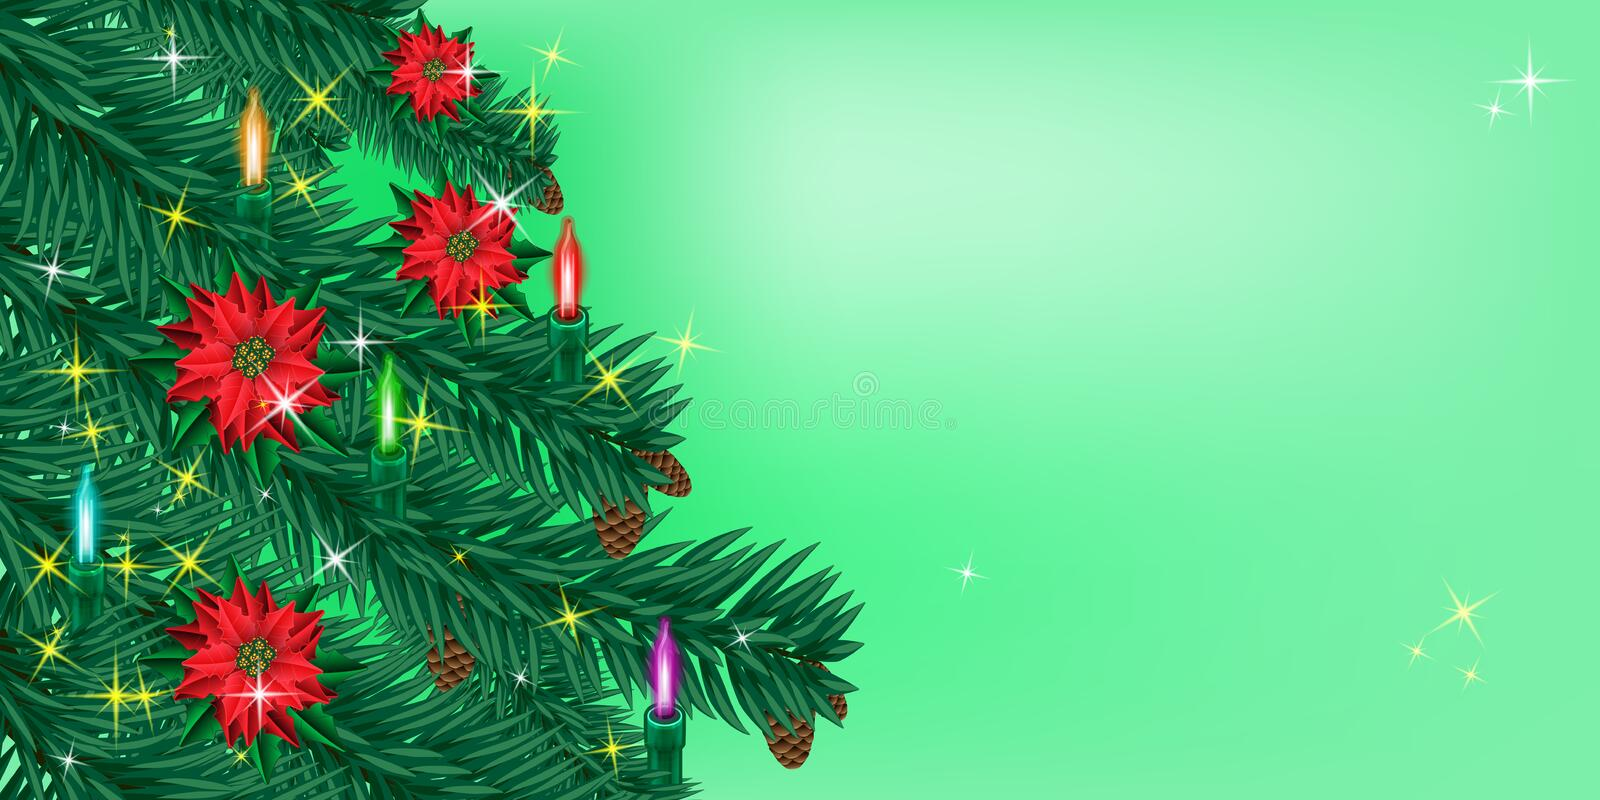 Christmas or New Year background. Sparkling Christmas tree branch with Christmas lights and flowers poinsettia royalty free illustration